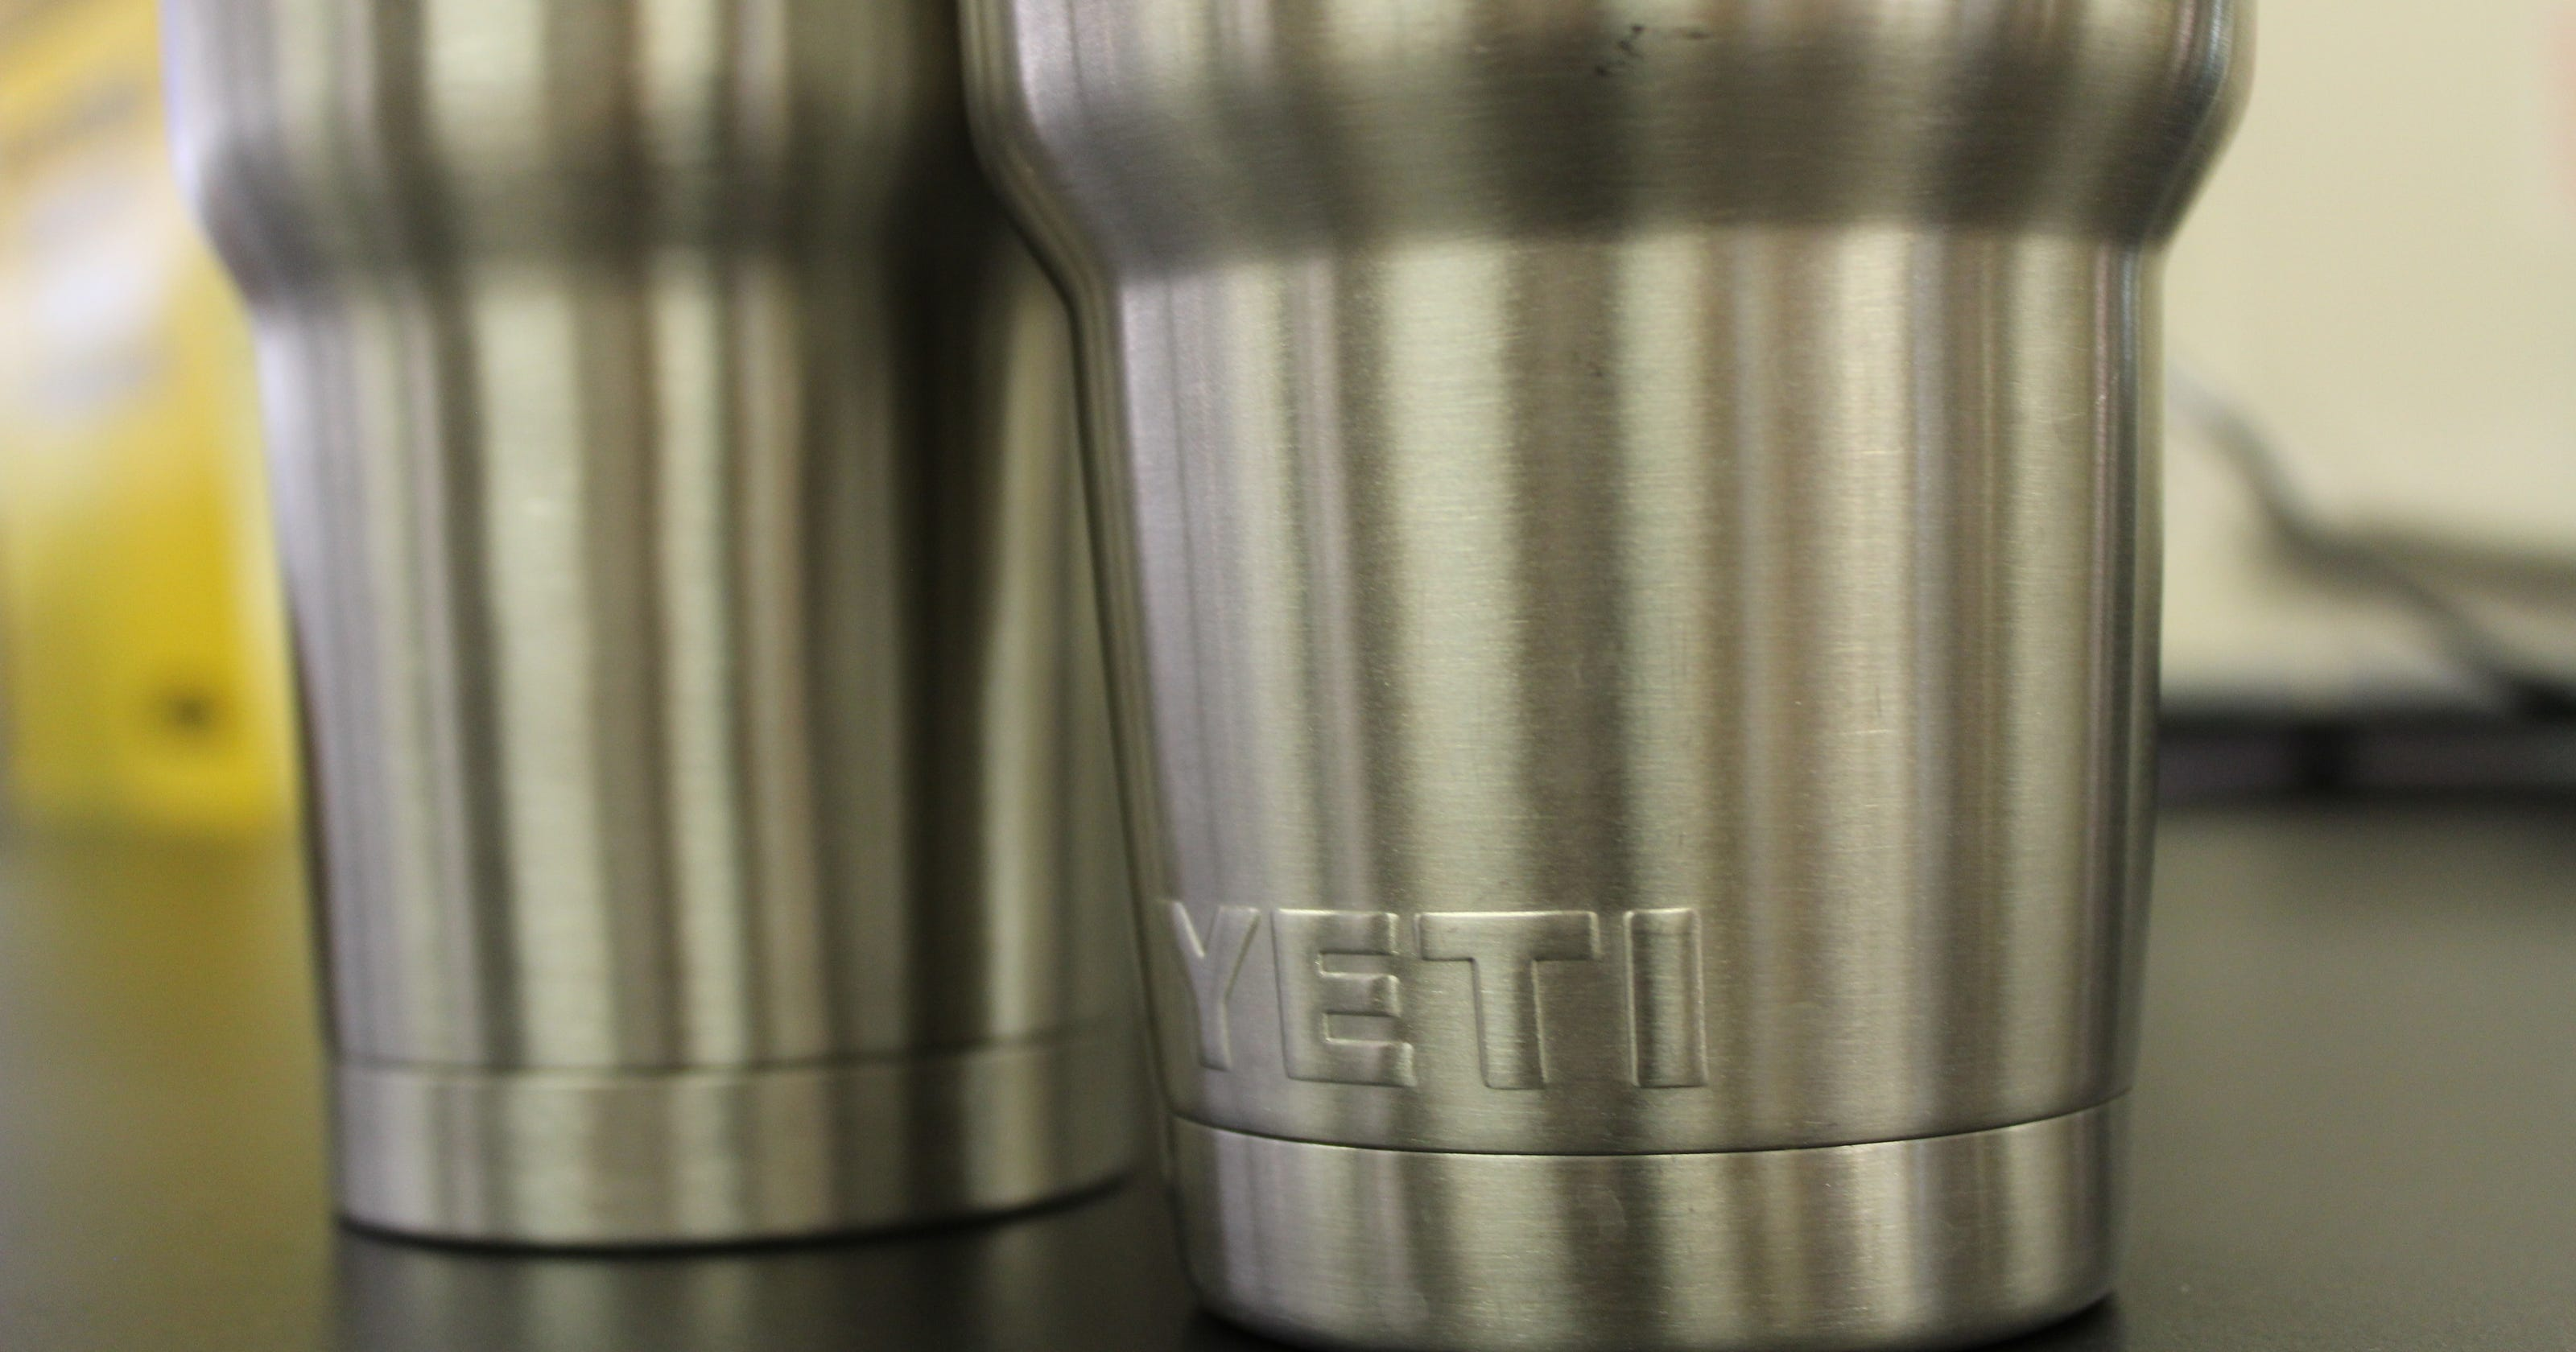 Are you ready for a Yeti? Popular cups make bold promise